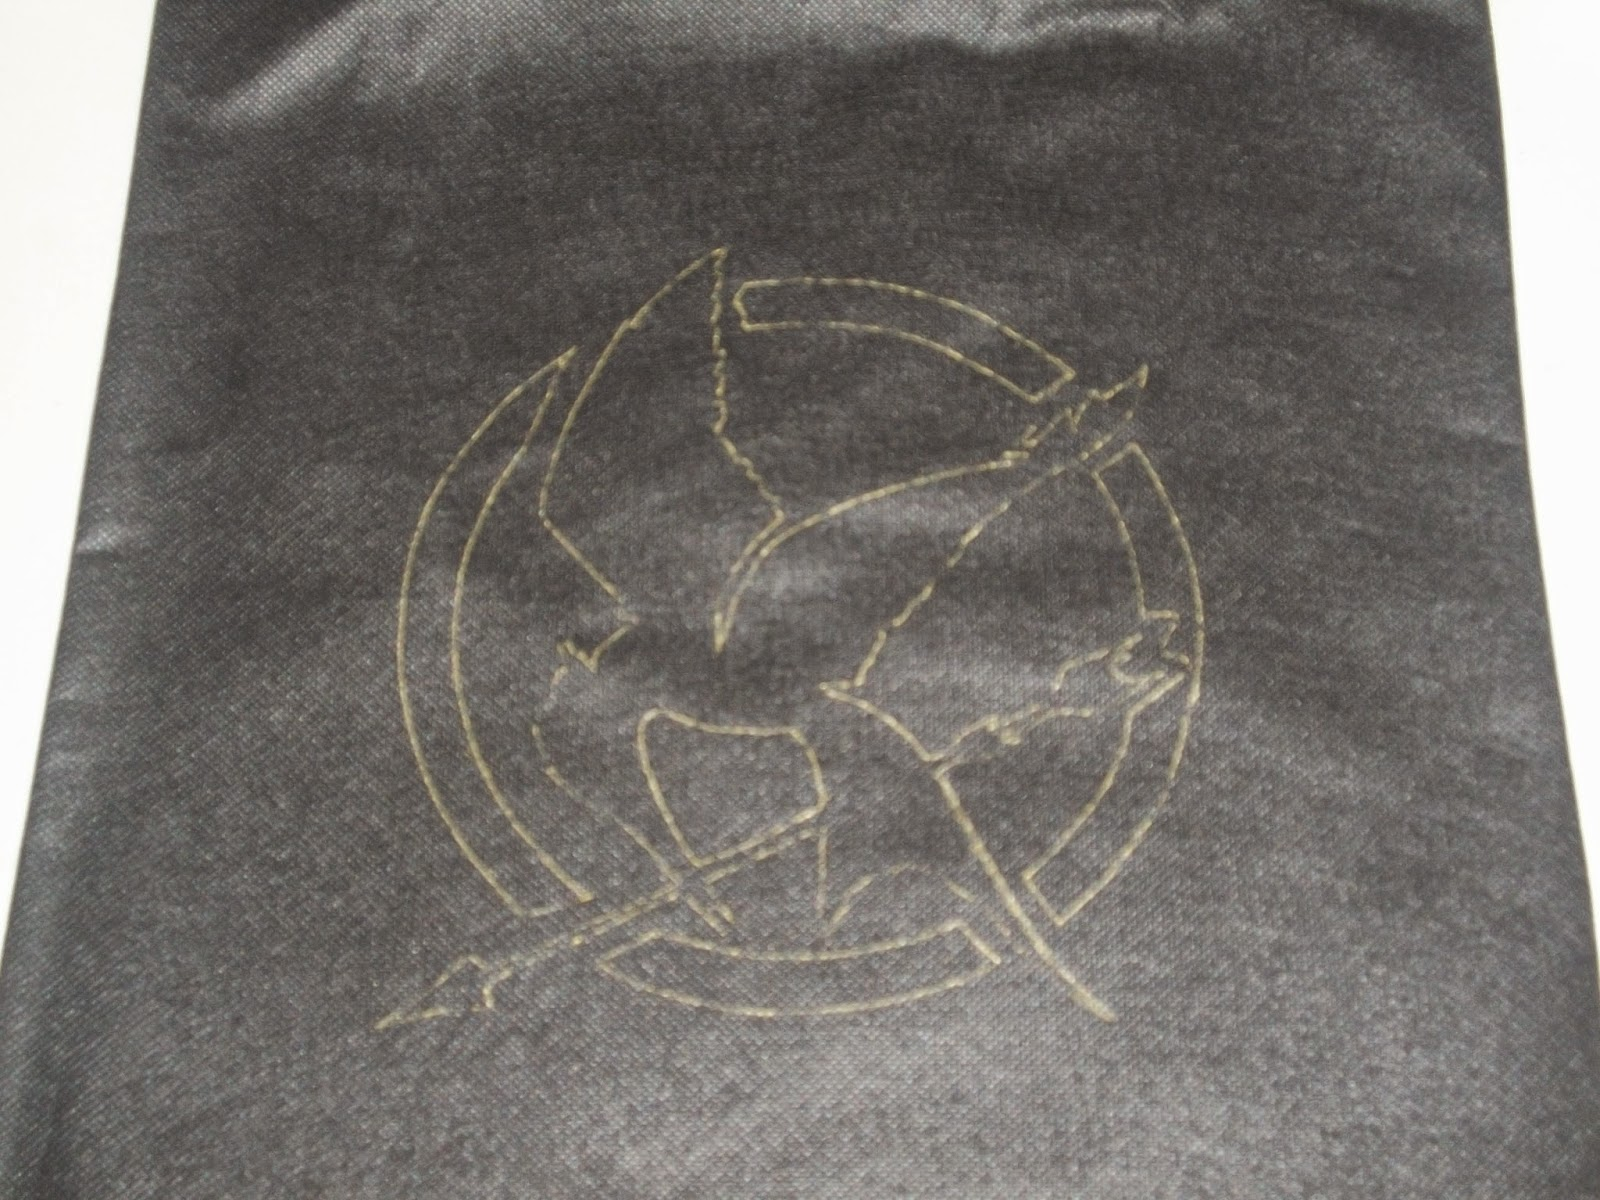 Mockingjay traced onto tote bag